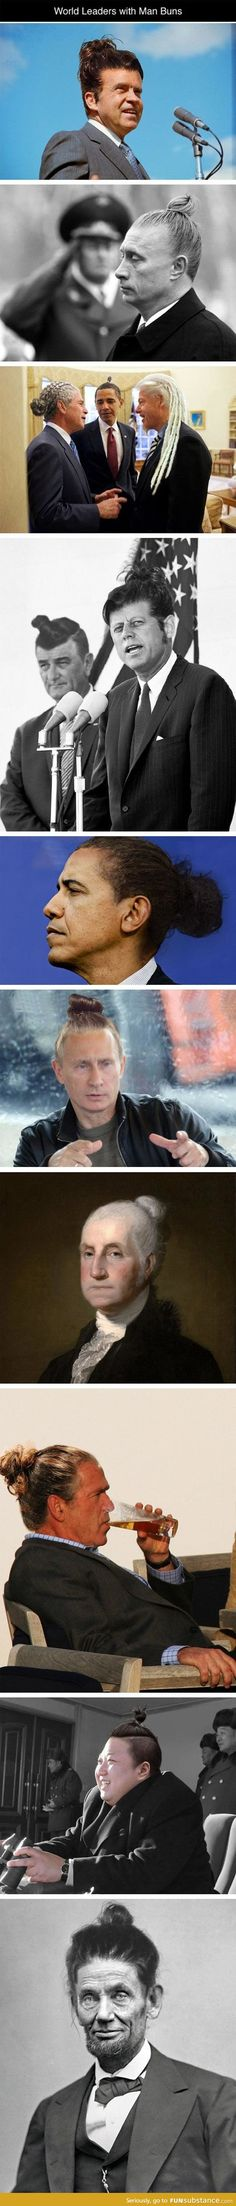 Leaders with man buns